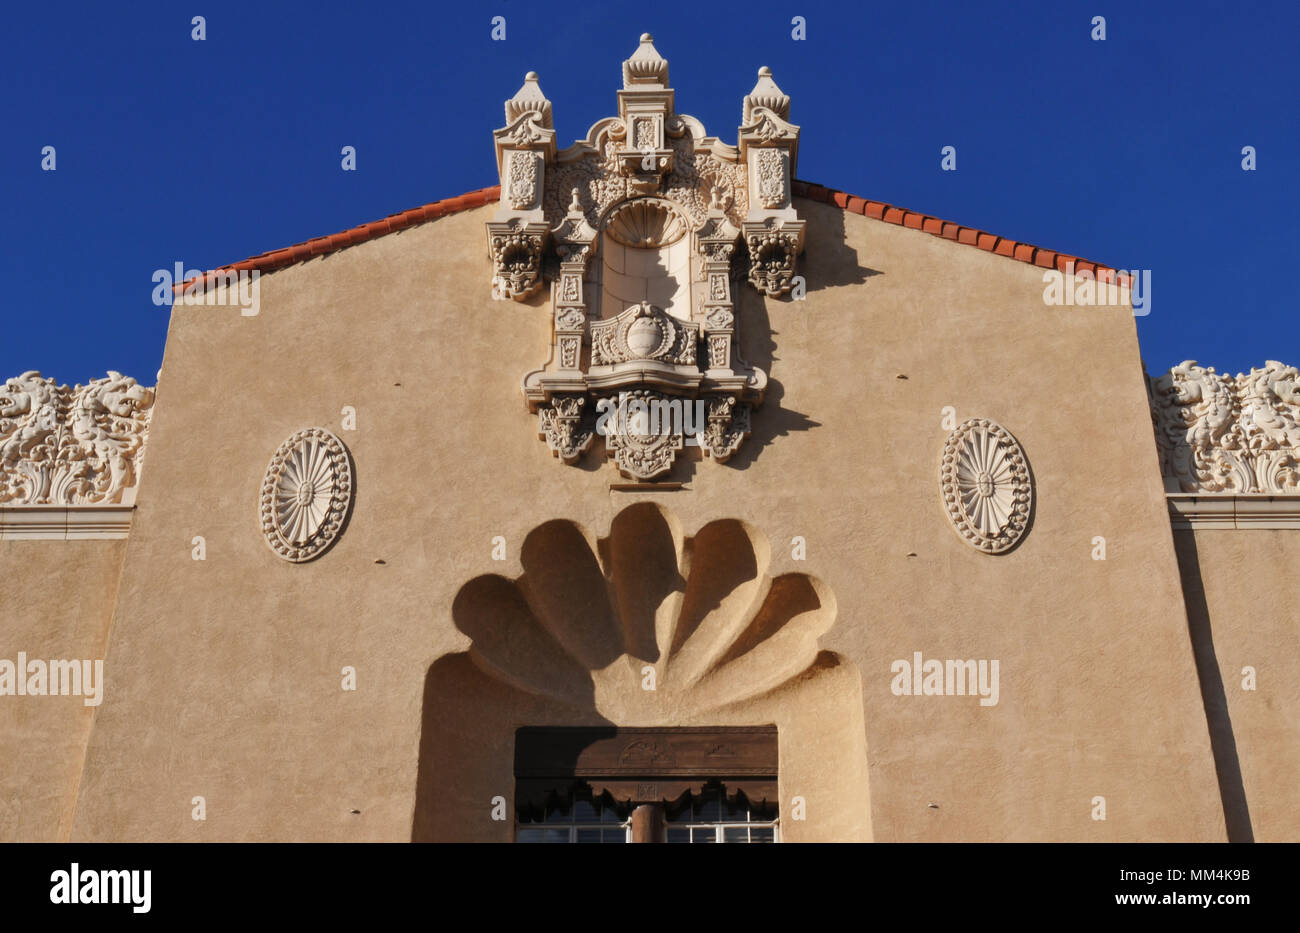 Exterior ornamentation on the Lensic Theater in Santa Fe, New Mexico. The landmark opened in 1931; an extensive restoration was completed in 2001. - Stock Image